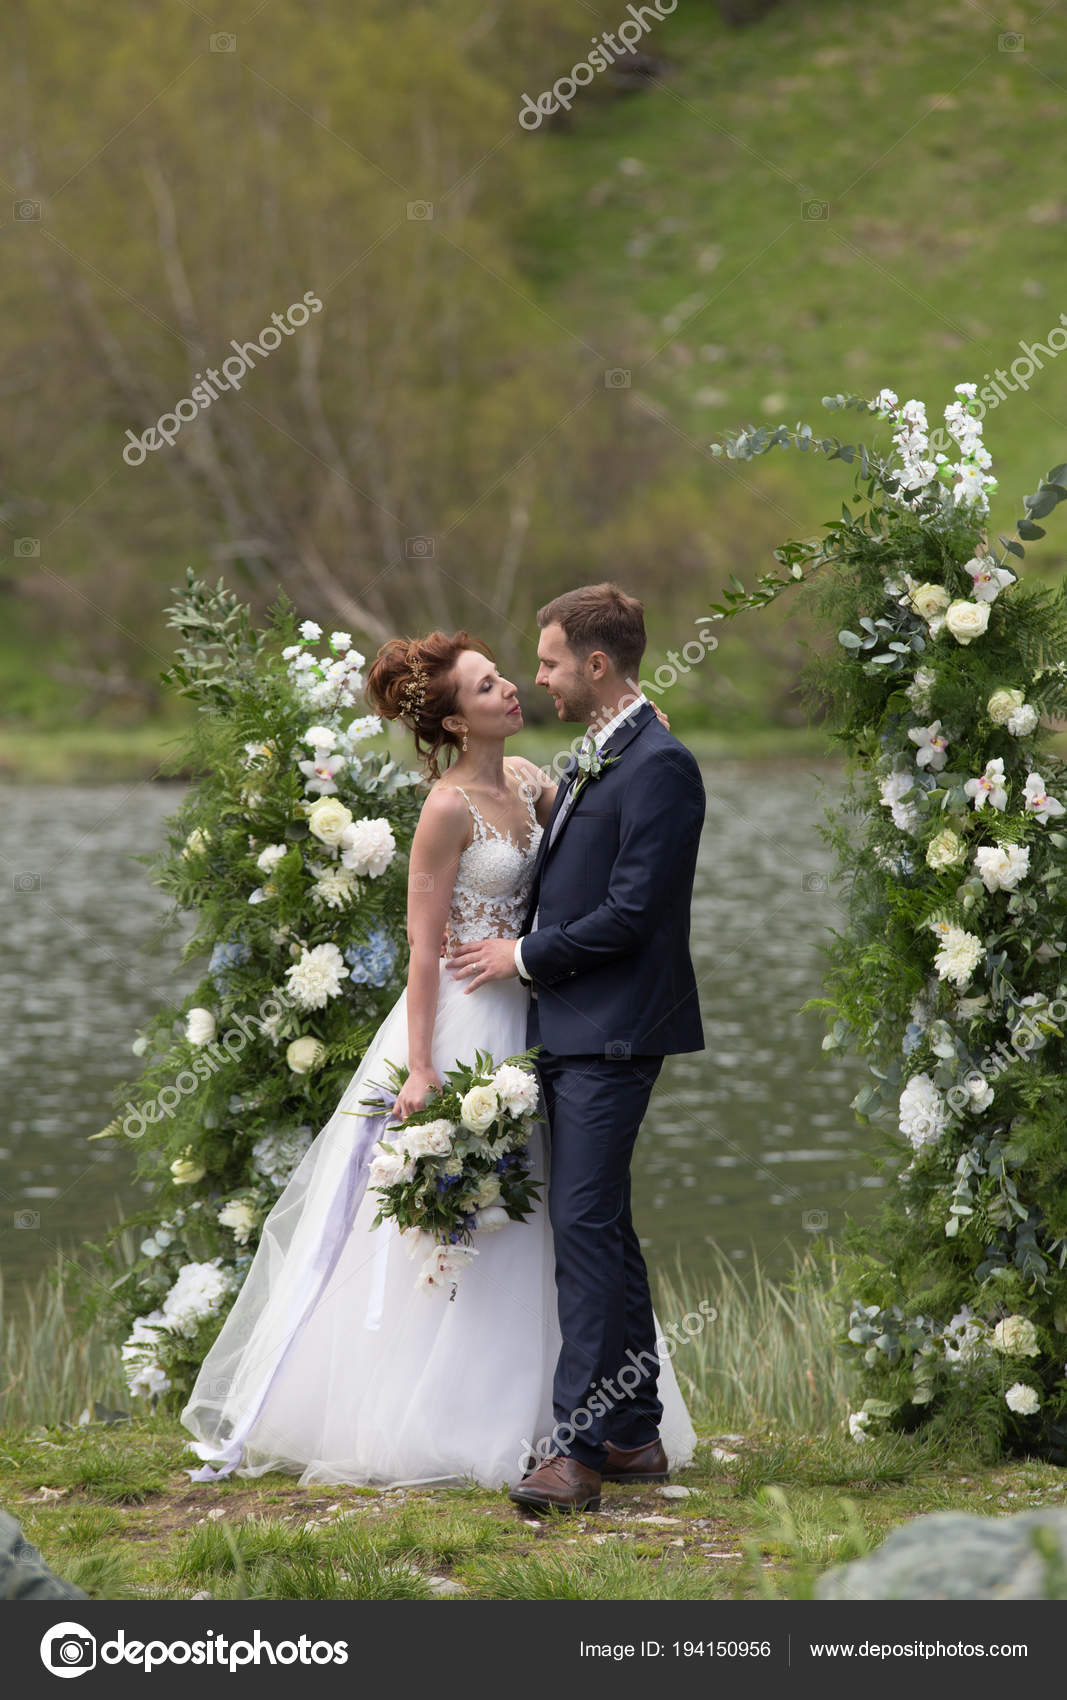 White flowers decorations during outdoor wedding ceremony — Stock